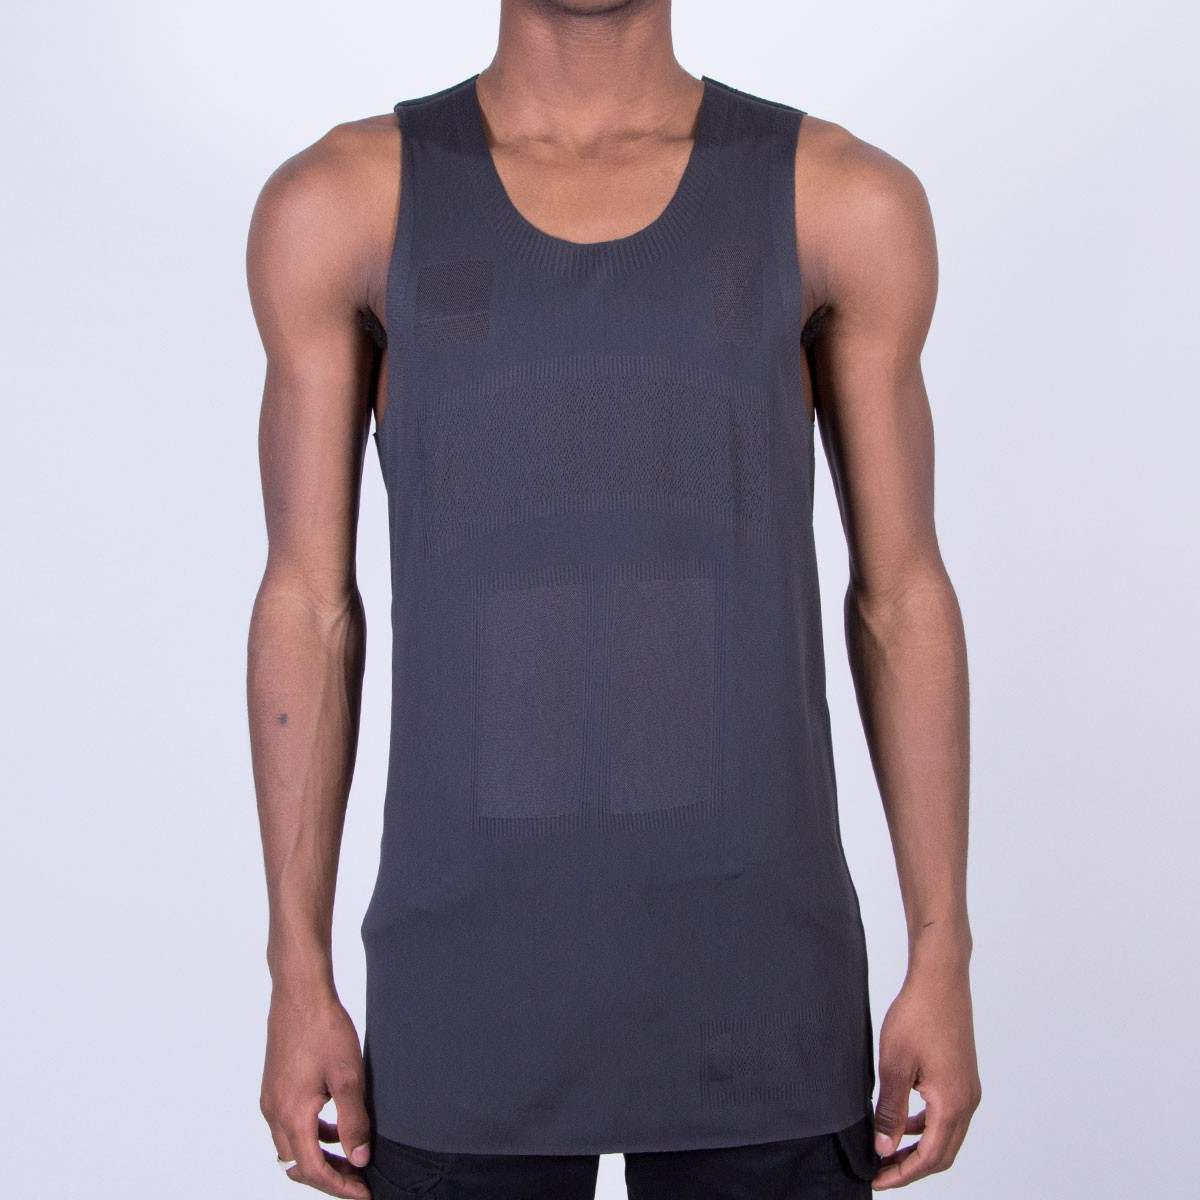 Adidas Mens Originals Day One Seamless Swing Tank Solid Grey, Size XL